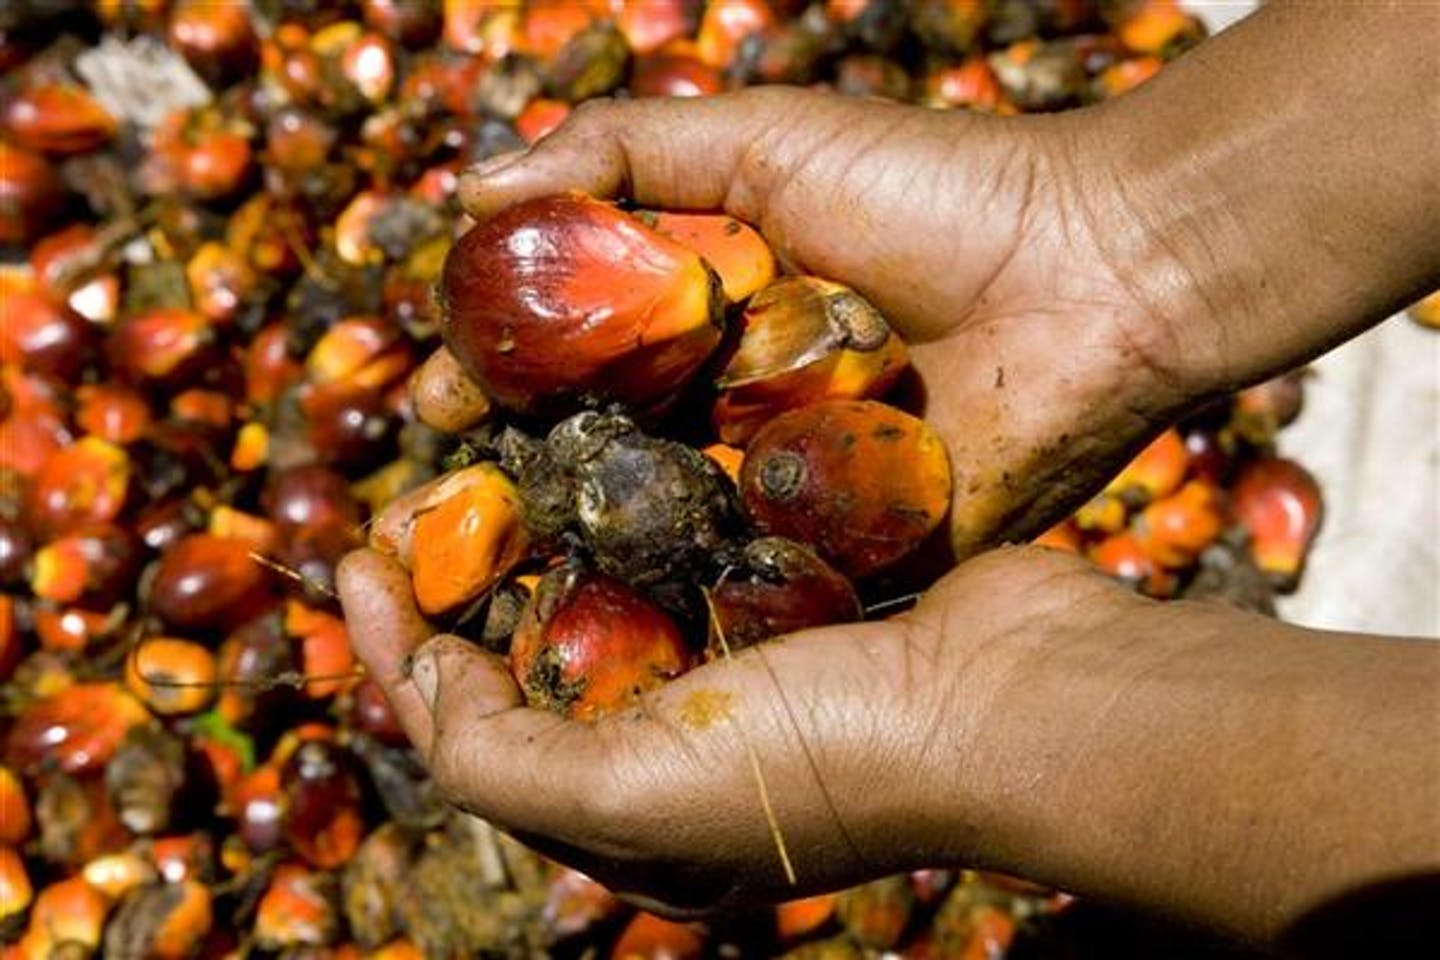 L'Oreal and sustainable palm oil